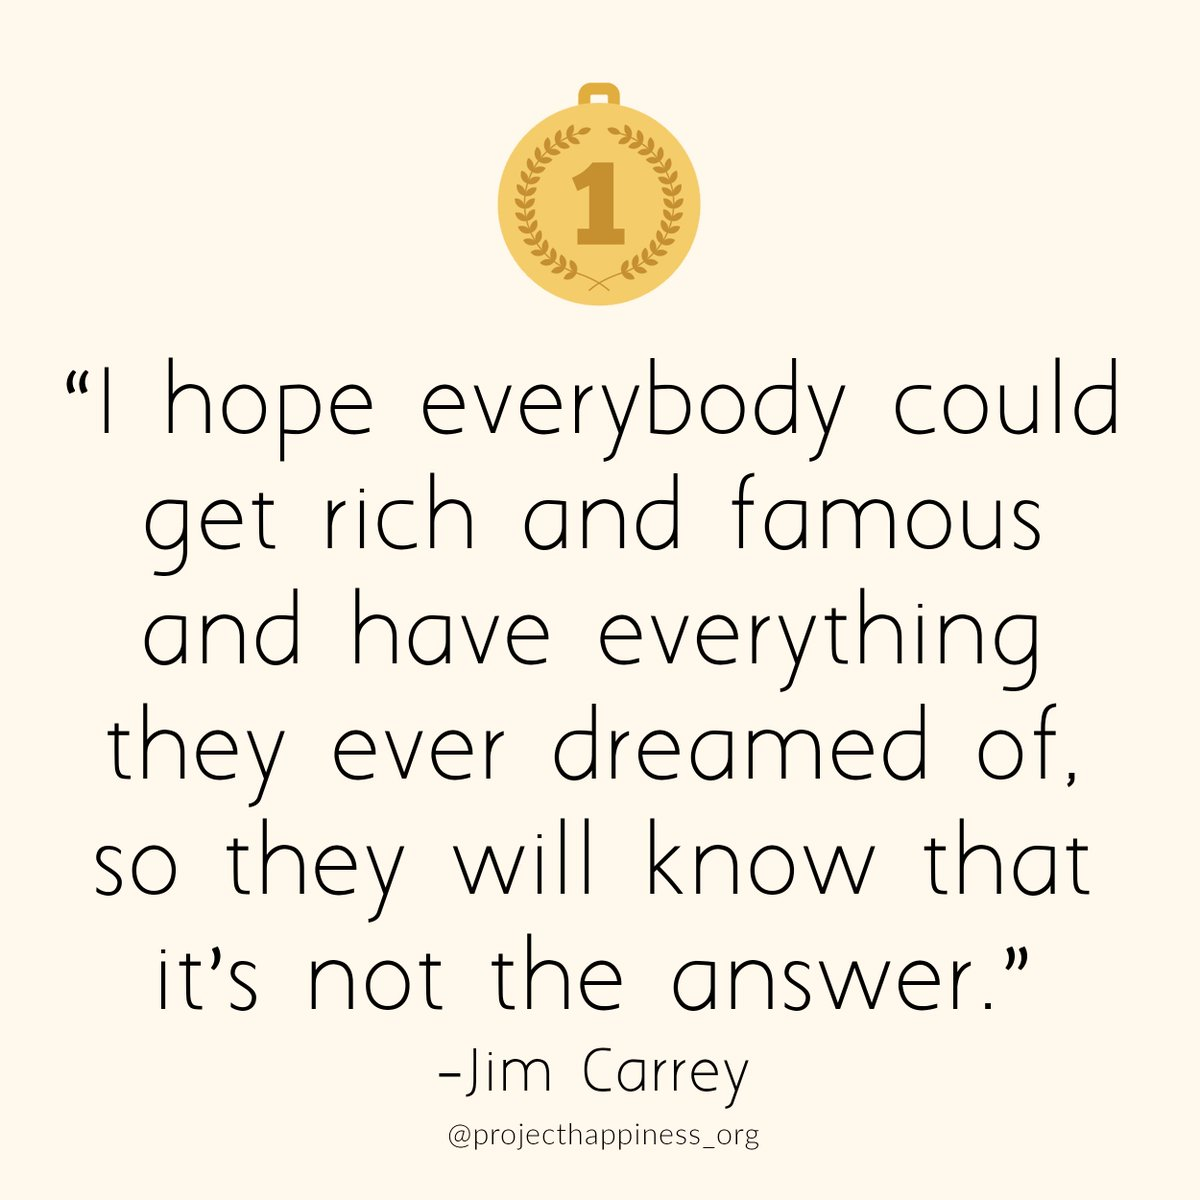 &quot;I hope everybody could get rich and famous and have everything they ever dreamed of, so they will know that it&#39;s not the answer.&quot; @JimCarrey   Success doesn&#39;t equal happiness. Happiness equals success.  #projecthappiness #gratitude #happiness #success<br>http://pic.twitter.com/rVOPrgG1v4